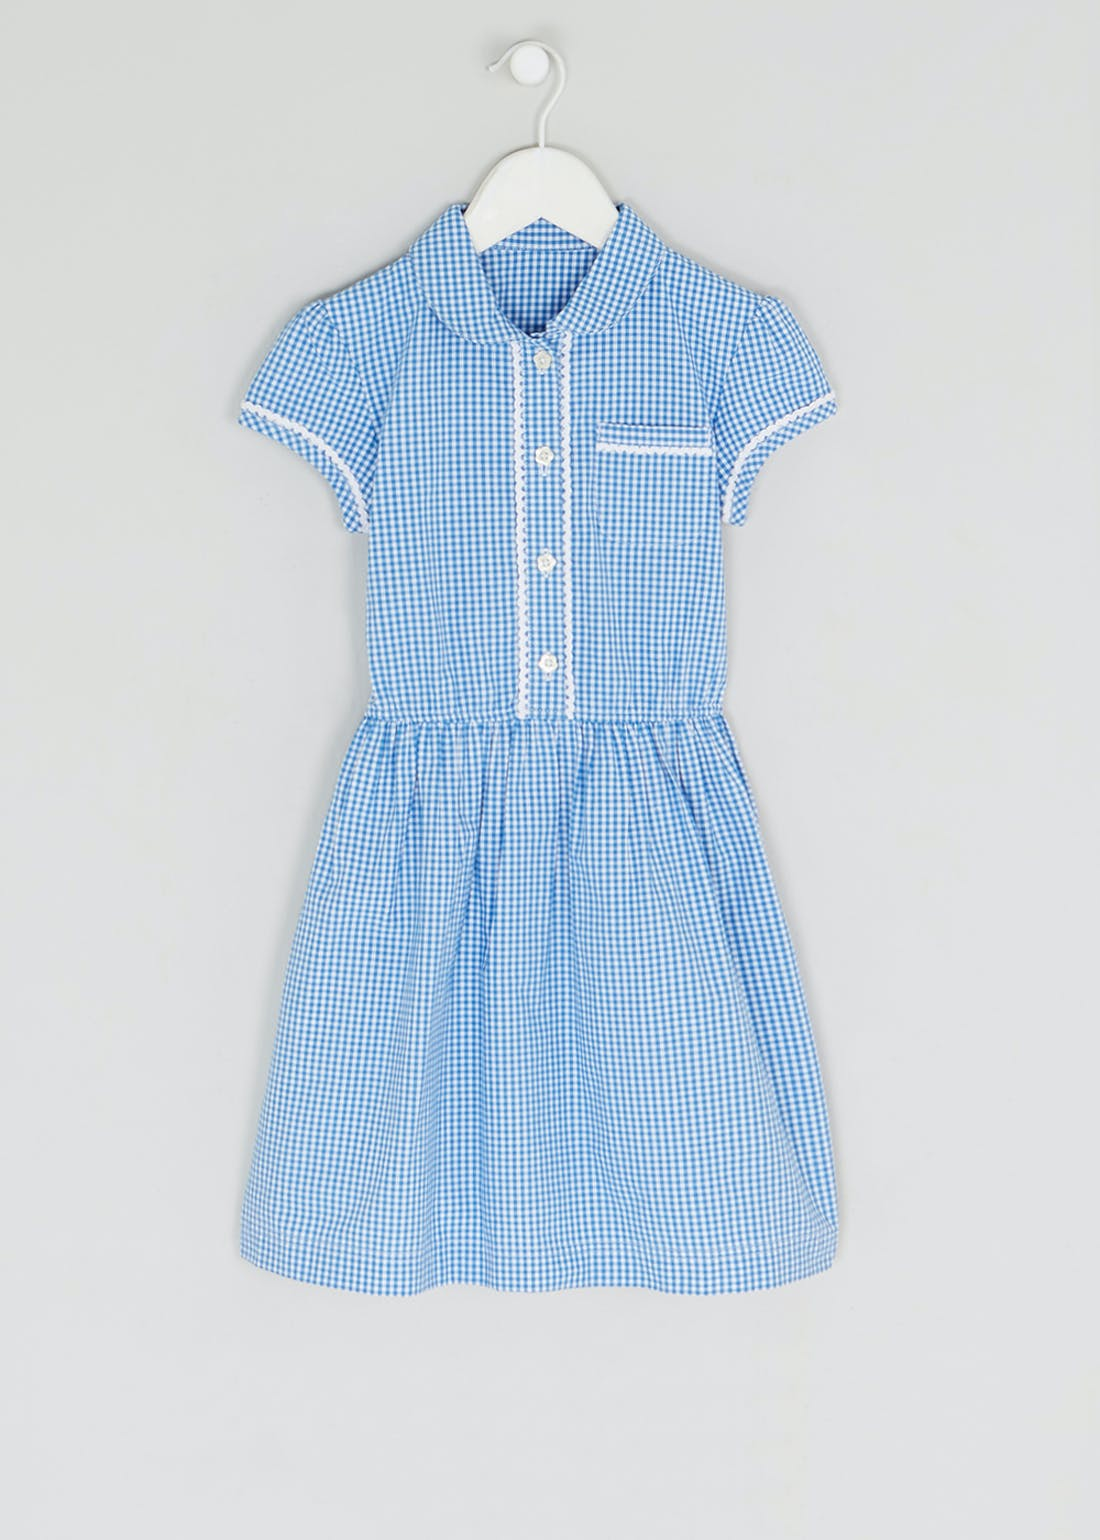 Girls Blue Gingham School Dress (3-14yrs)